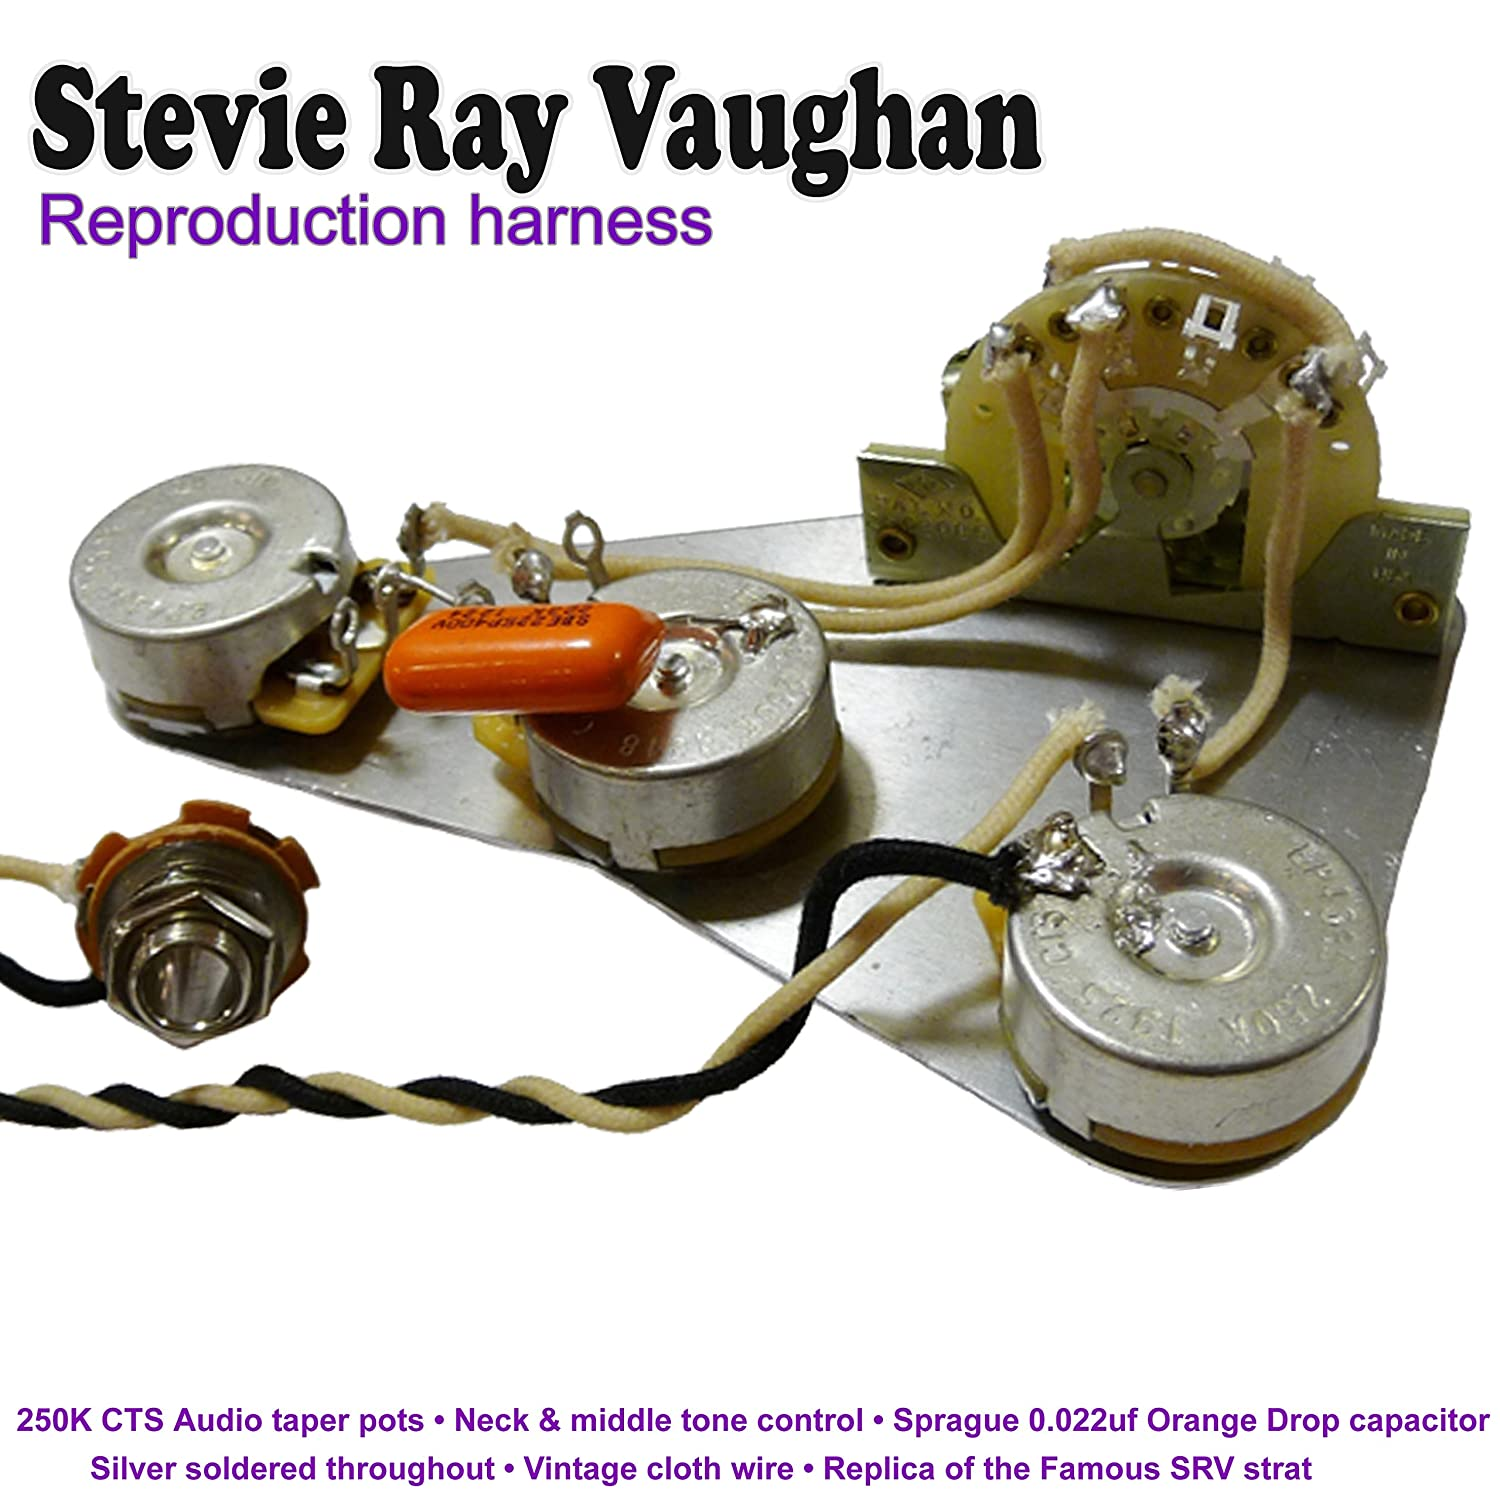 Stevie Ray Vaughan REPRODUCTION Cable Kit: Amazon.co.uk: Musical Instruments